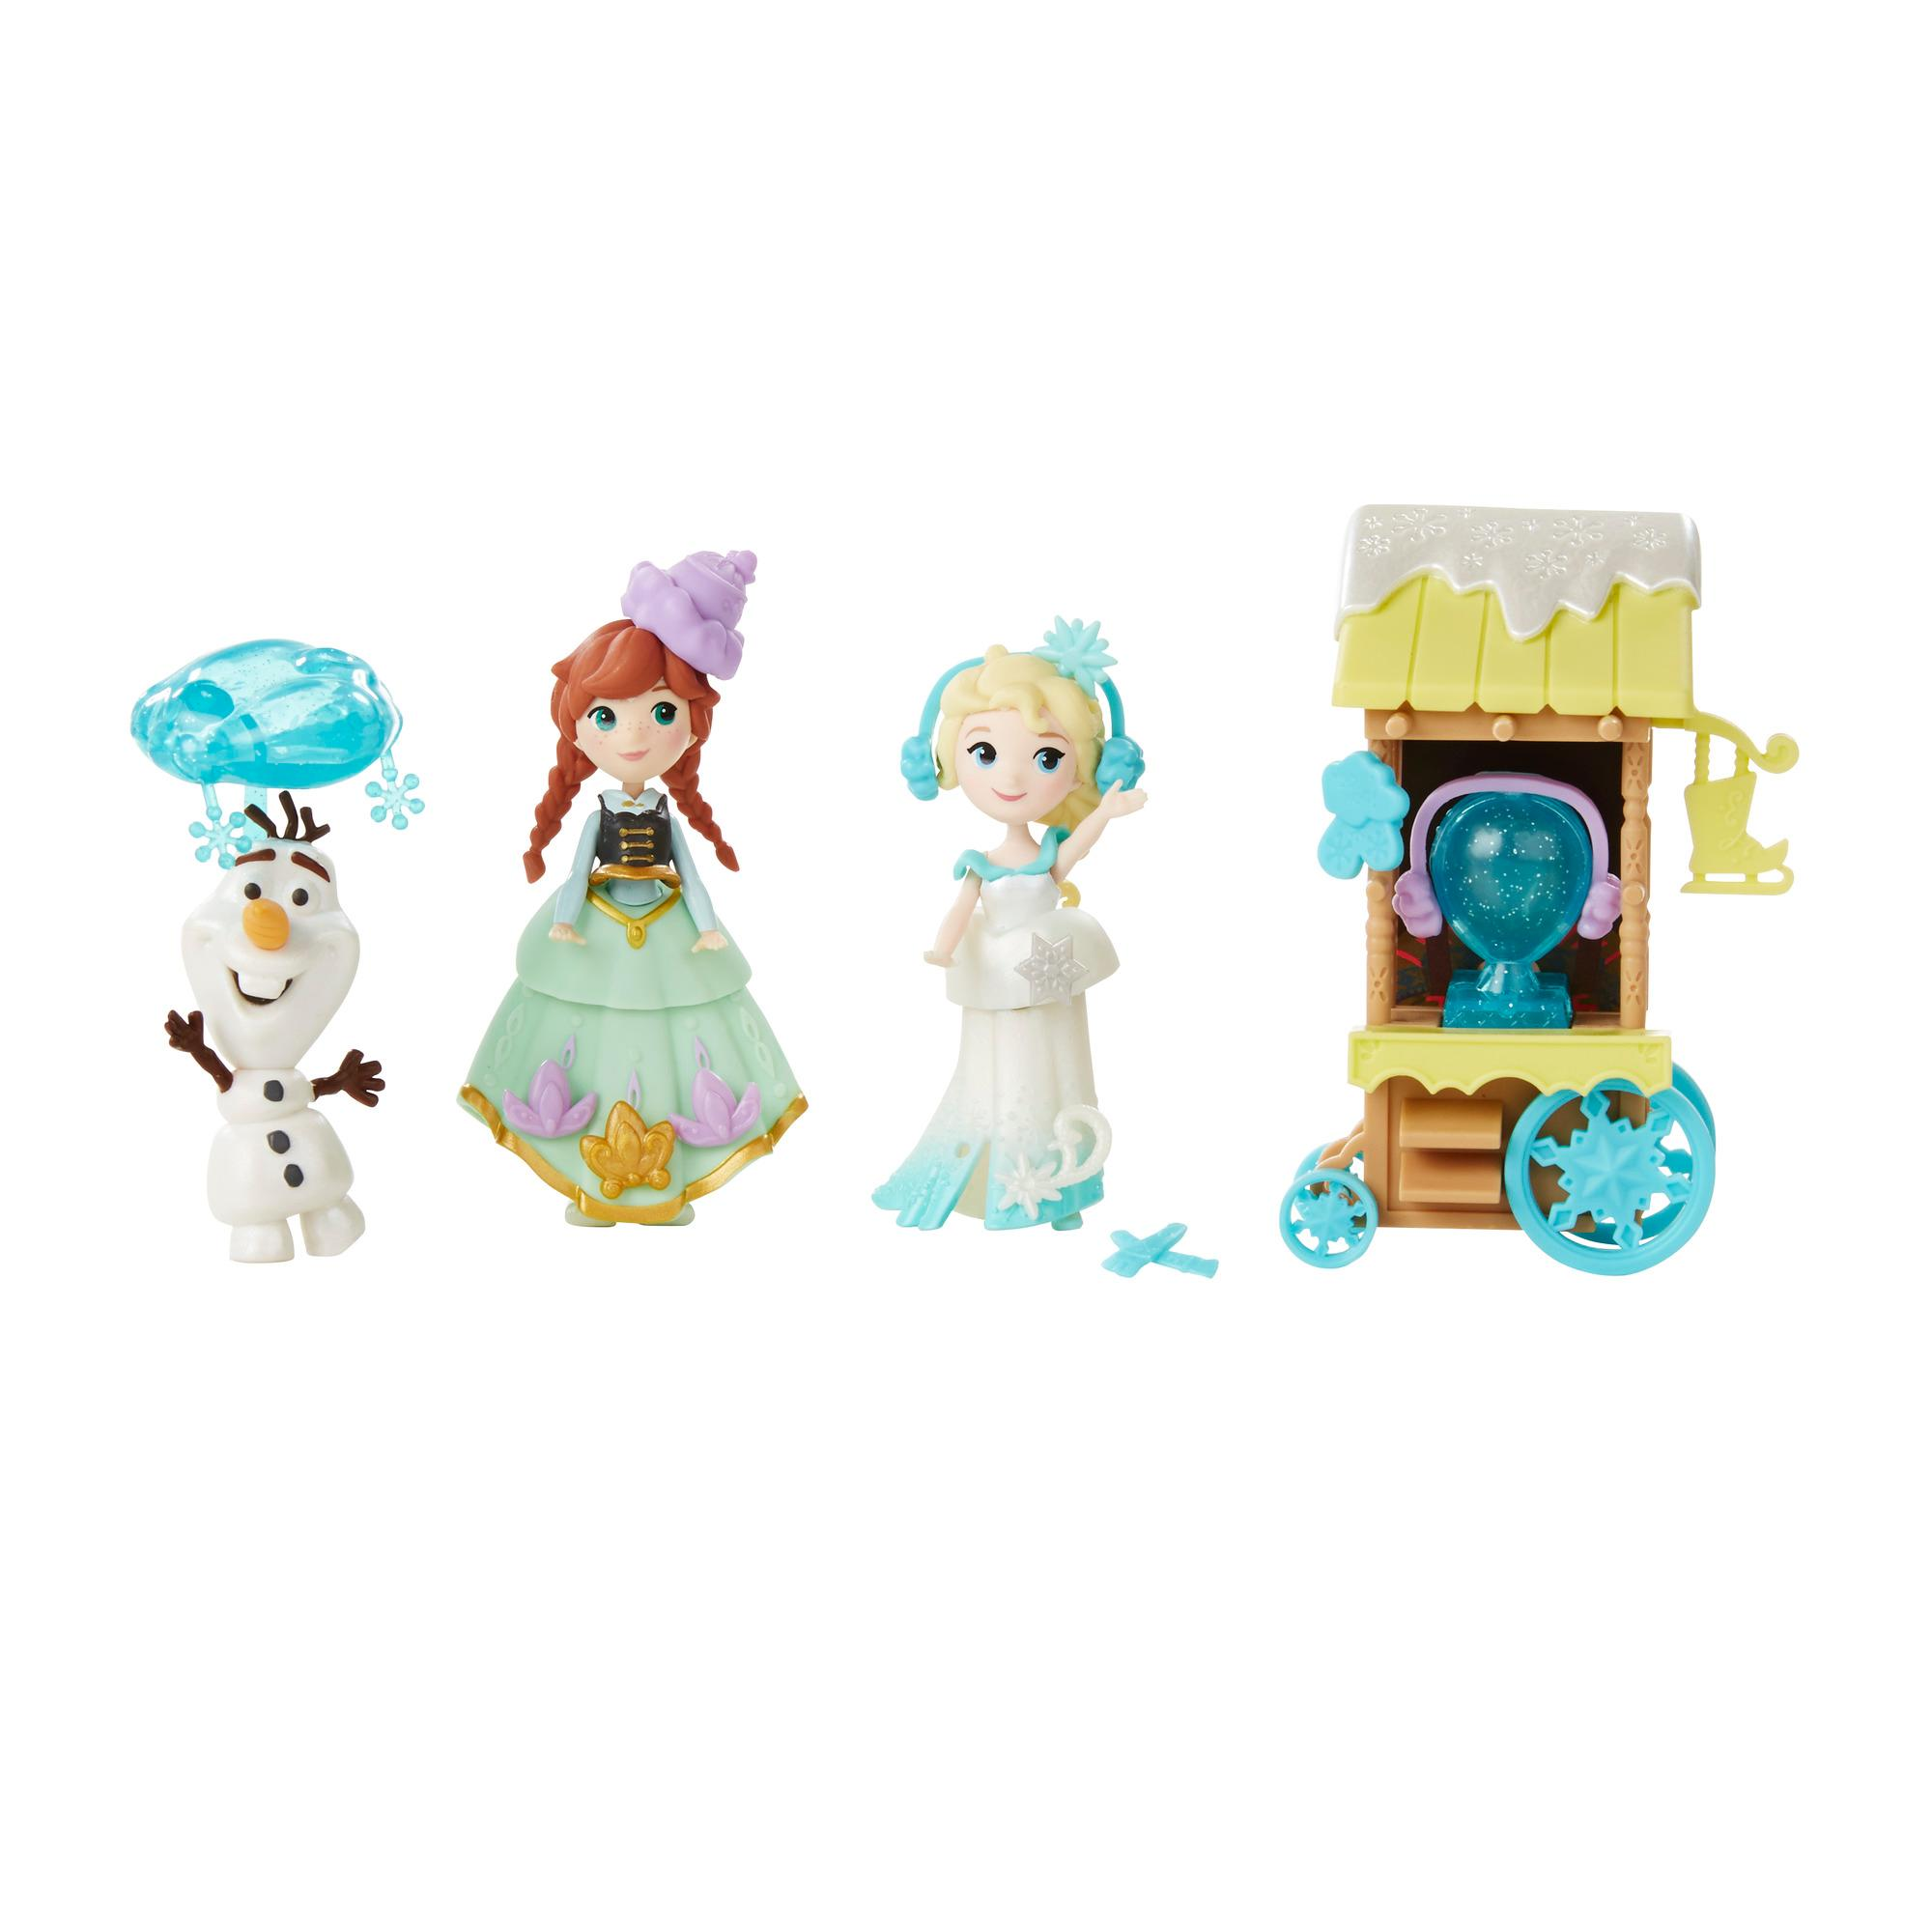 Disney Frozen Little Kingdom Ice Skating Scene Set